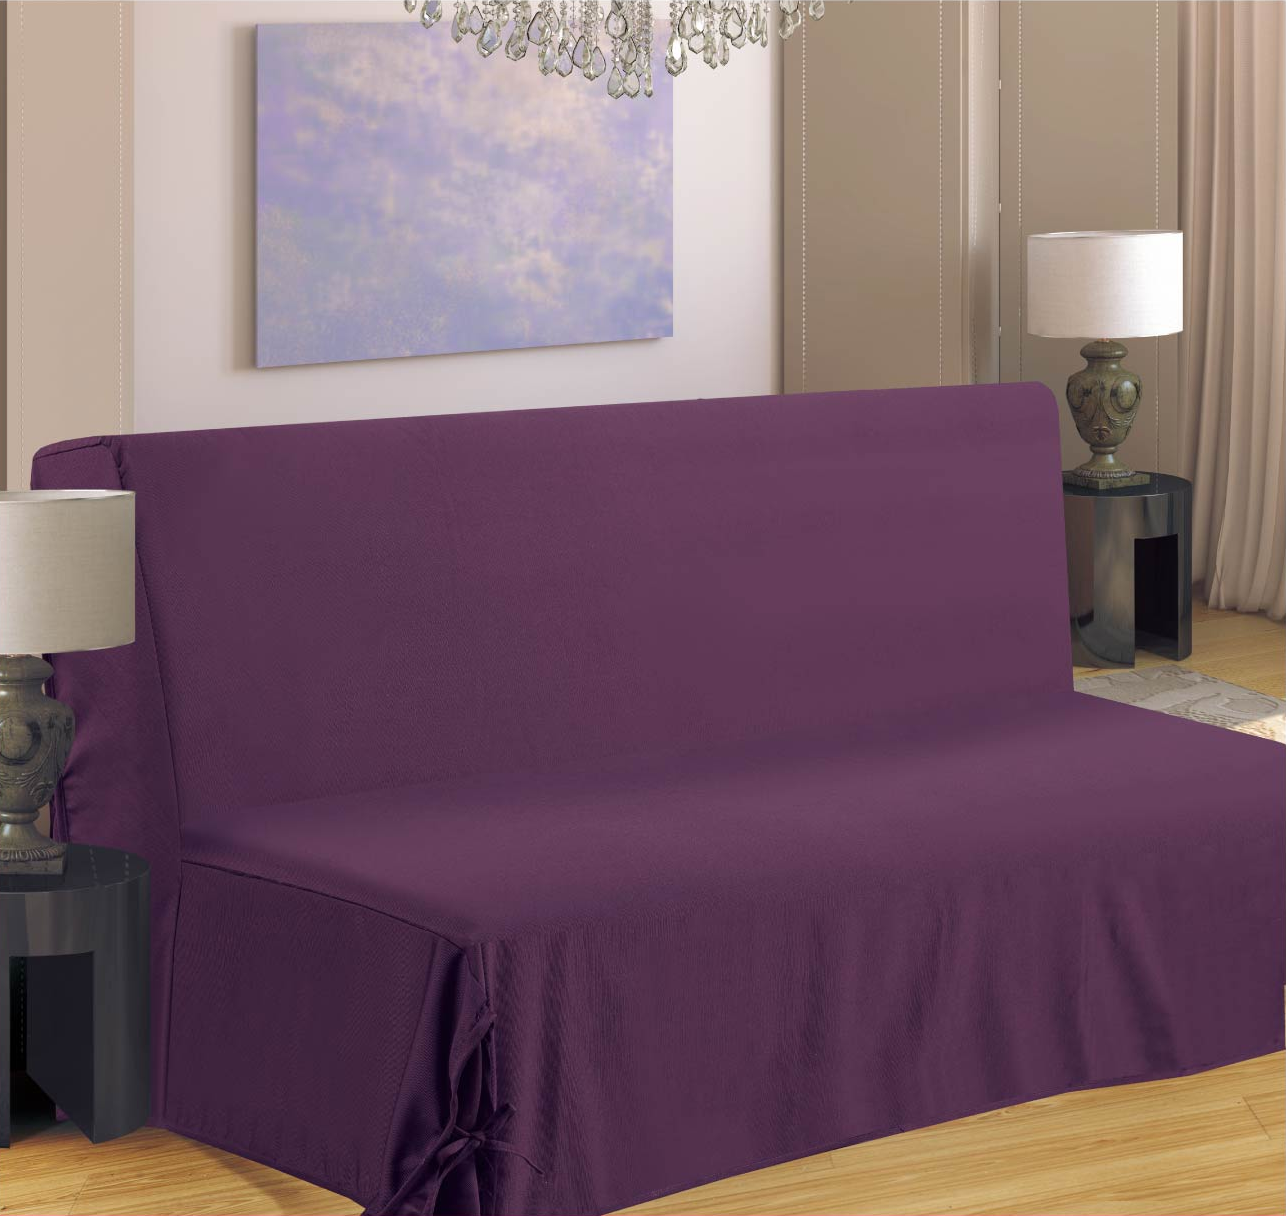 housse de clic clac nouettes violet violet homemaison vente en ligne housses de clic clac. Black Bedroom Furniture Sets. Home Design Ideas